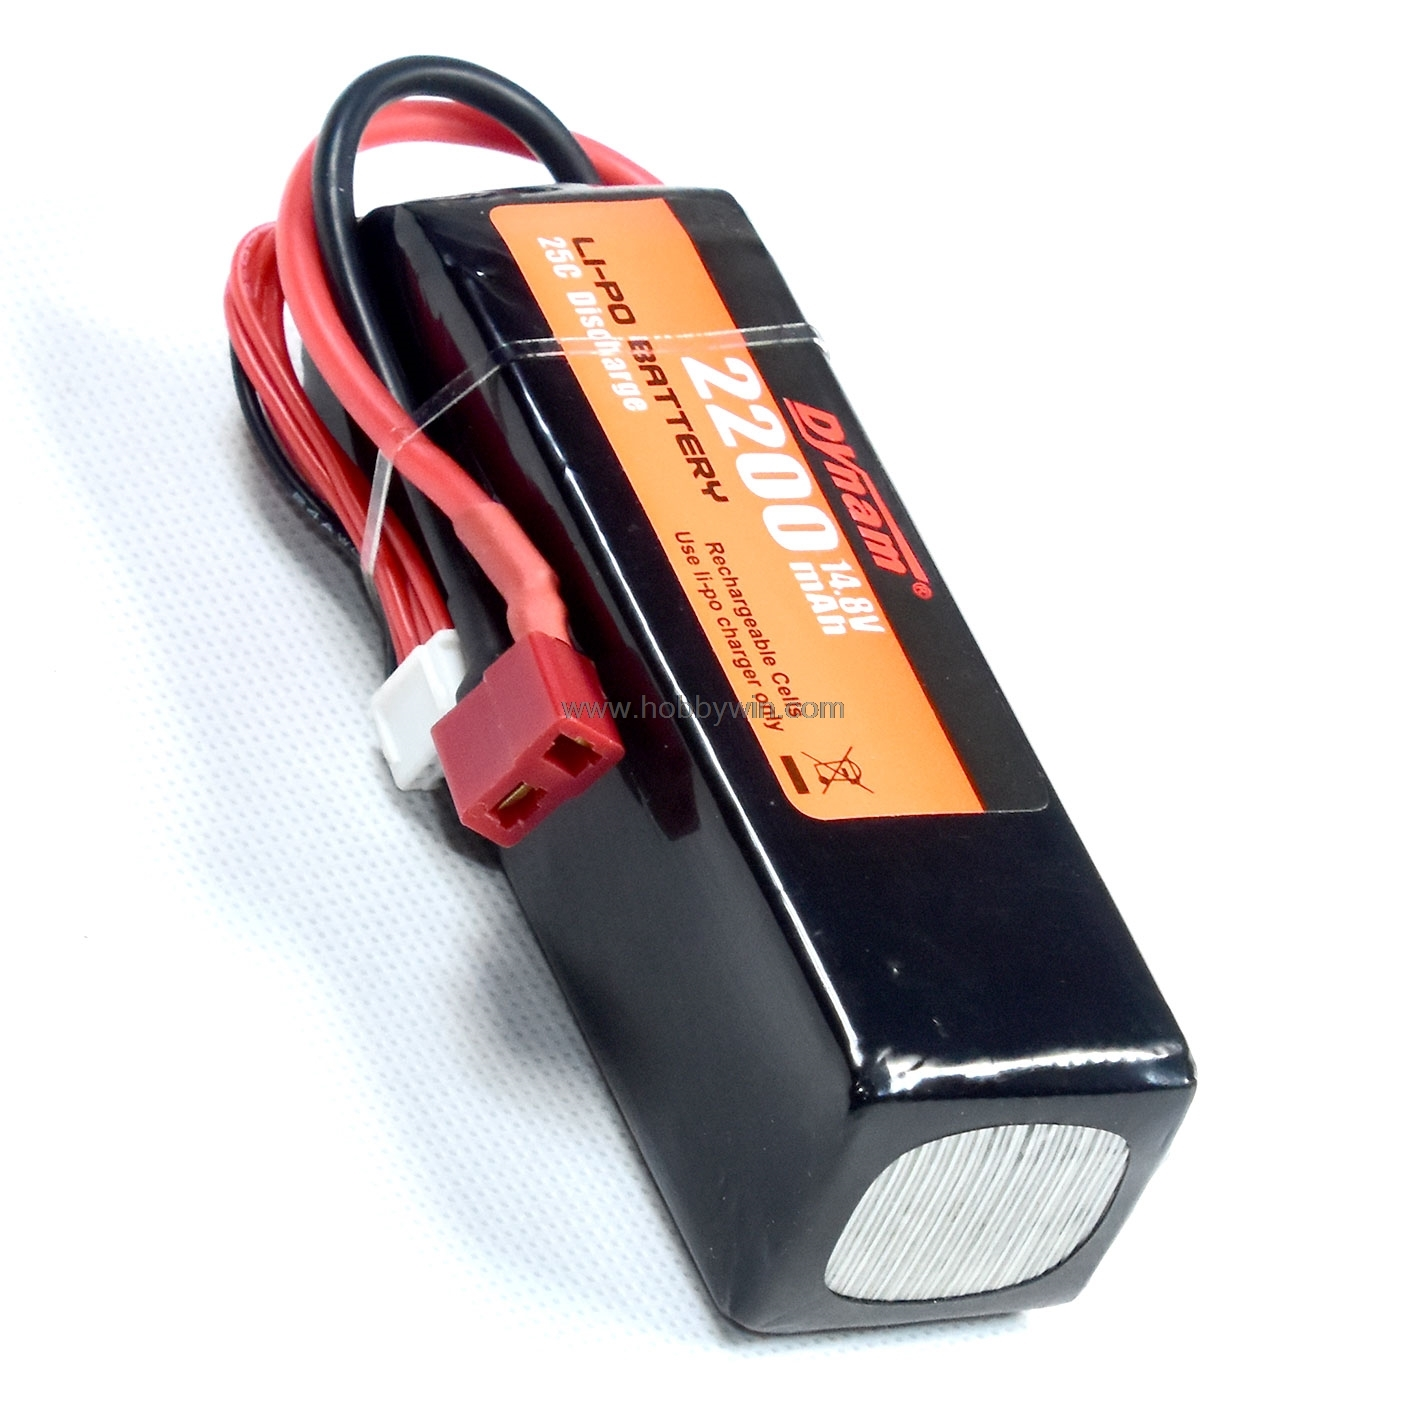 Dynam part DY-6015 4S1P <font><b>14.8V</b></font> <font><b>2200mAh</b></font> 25C LiPO battery for RC Model Airplane Tiger Moth image